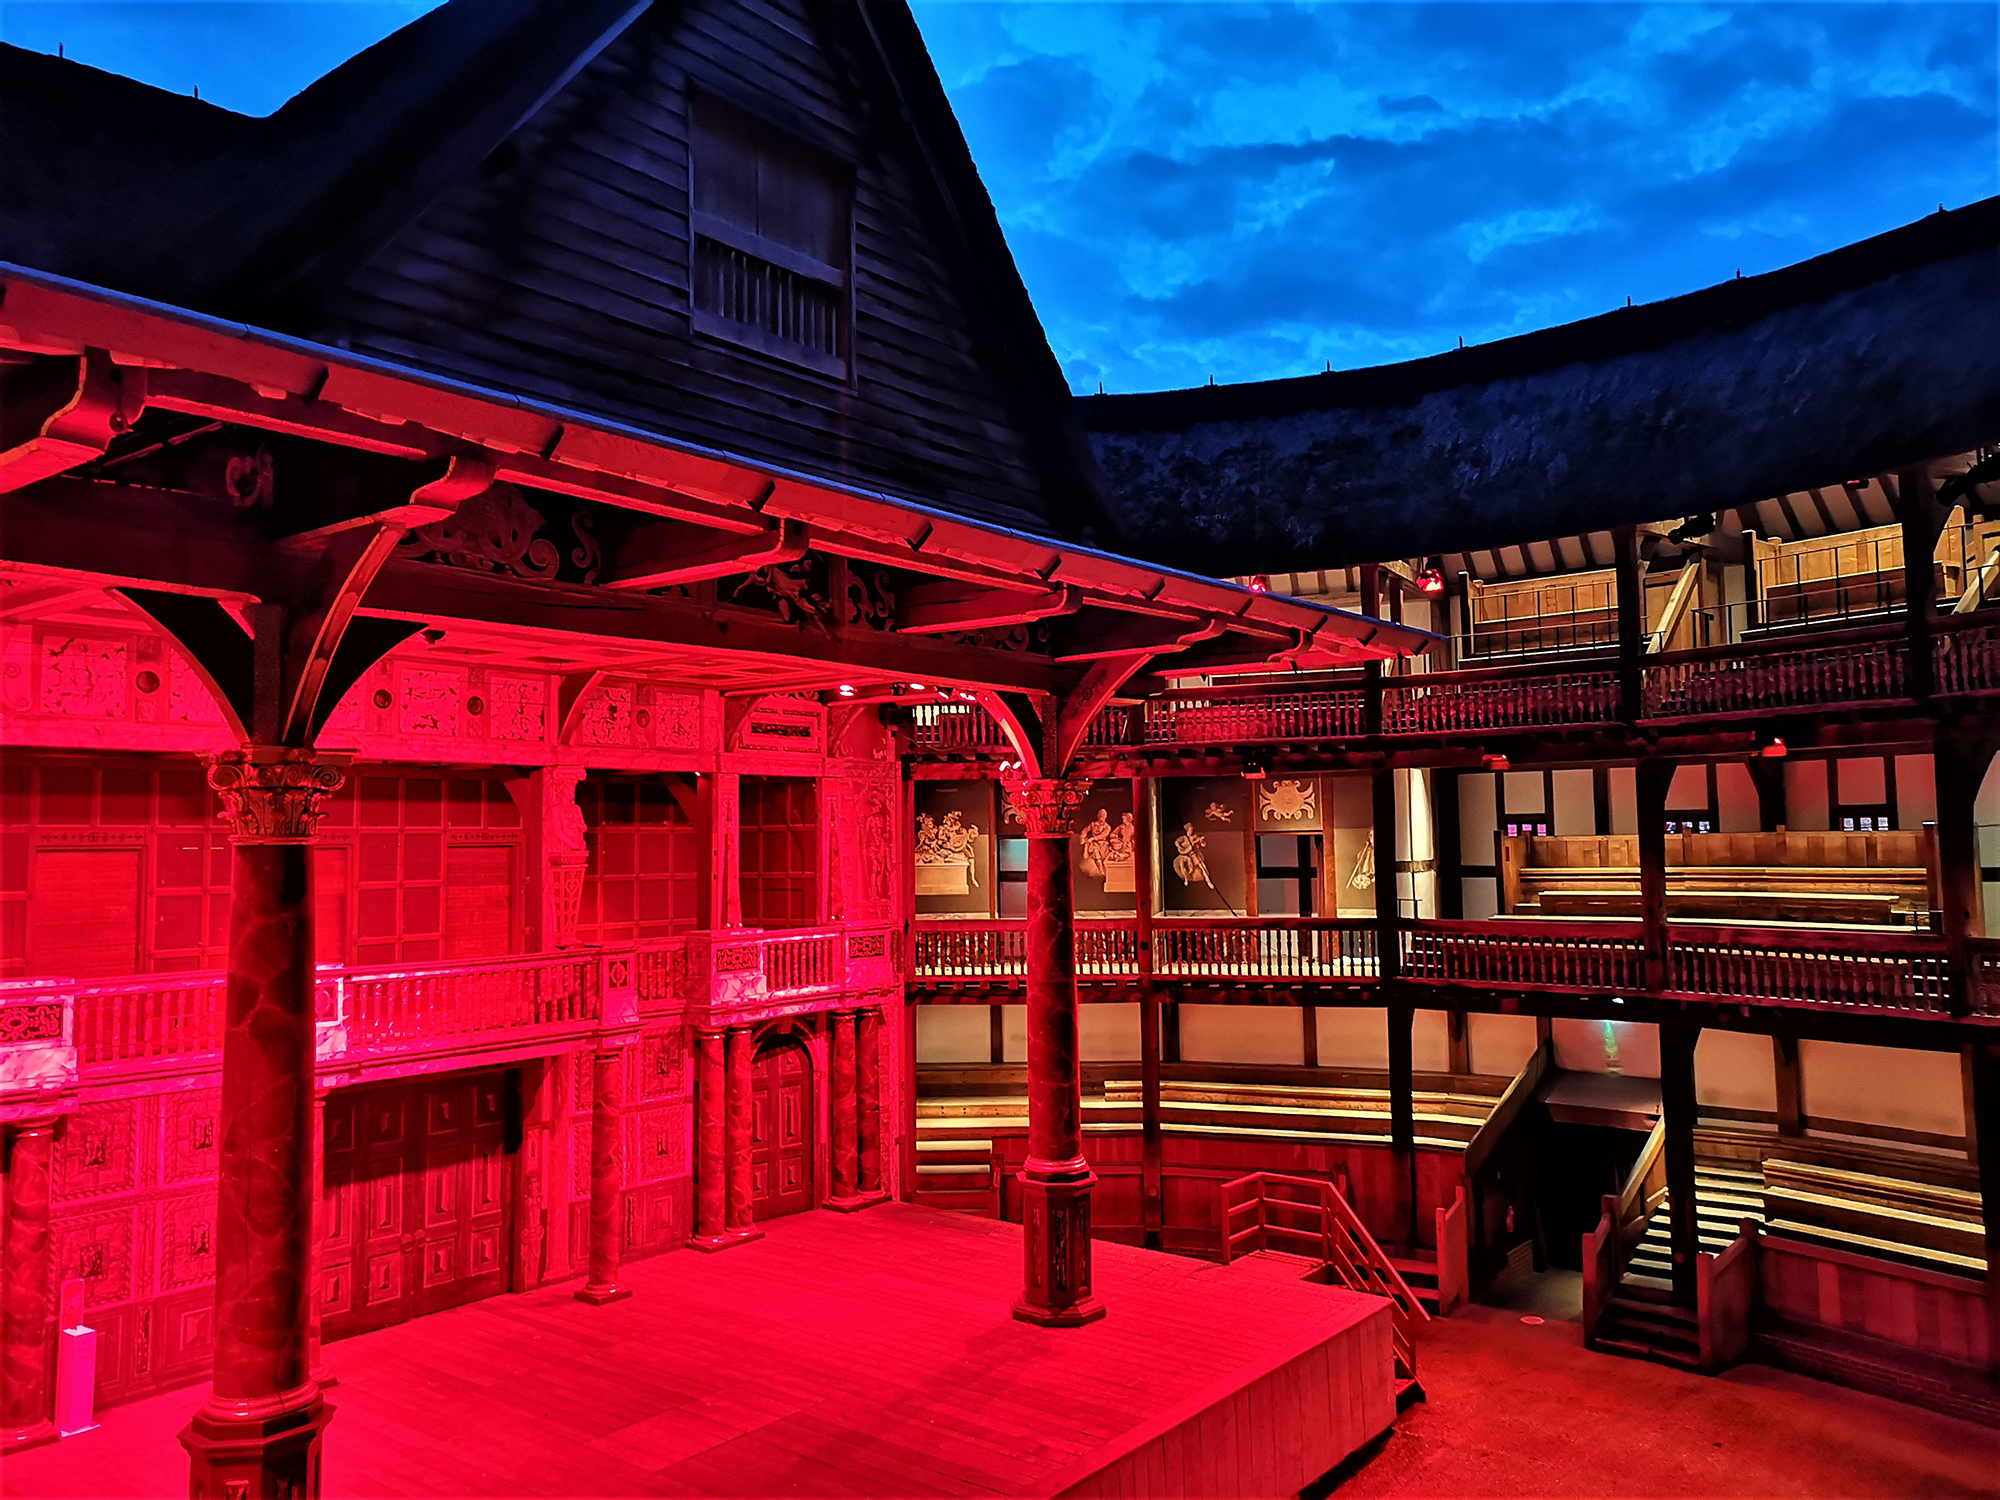 The stage of the Globe Theatre is lit by red lights.